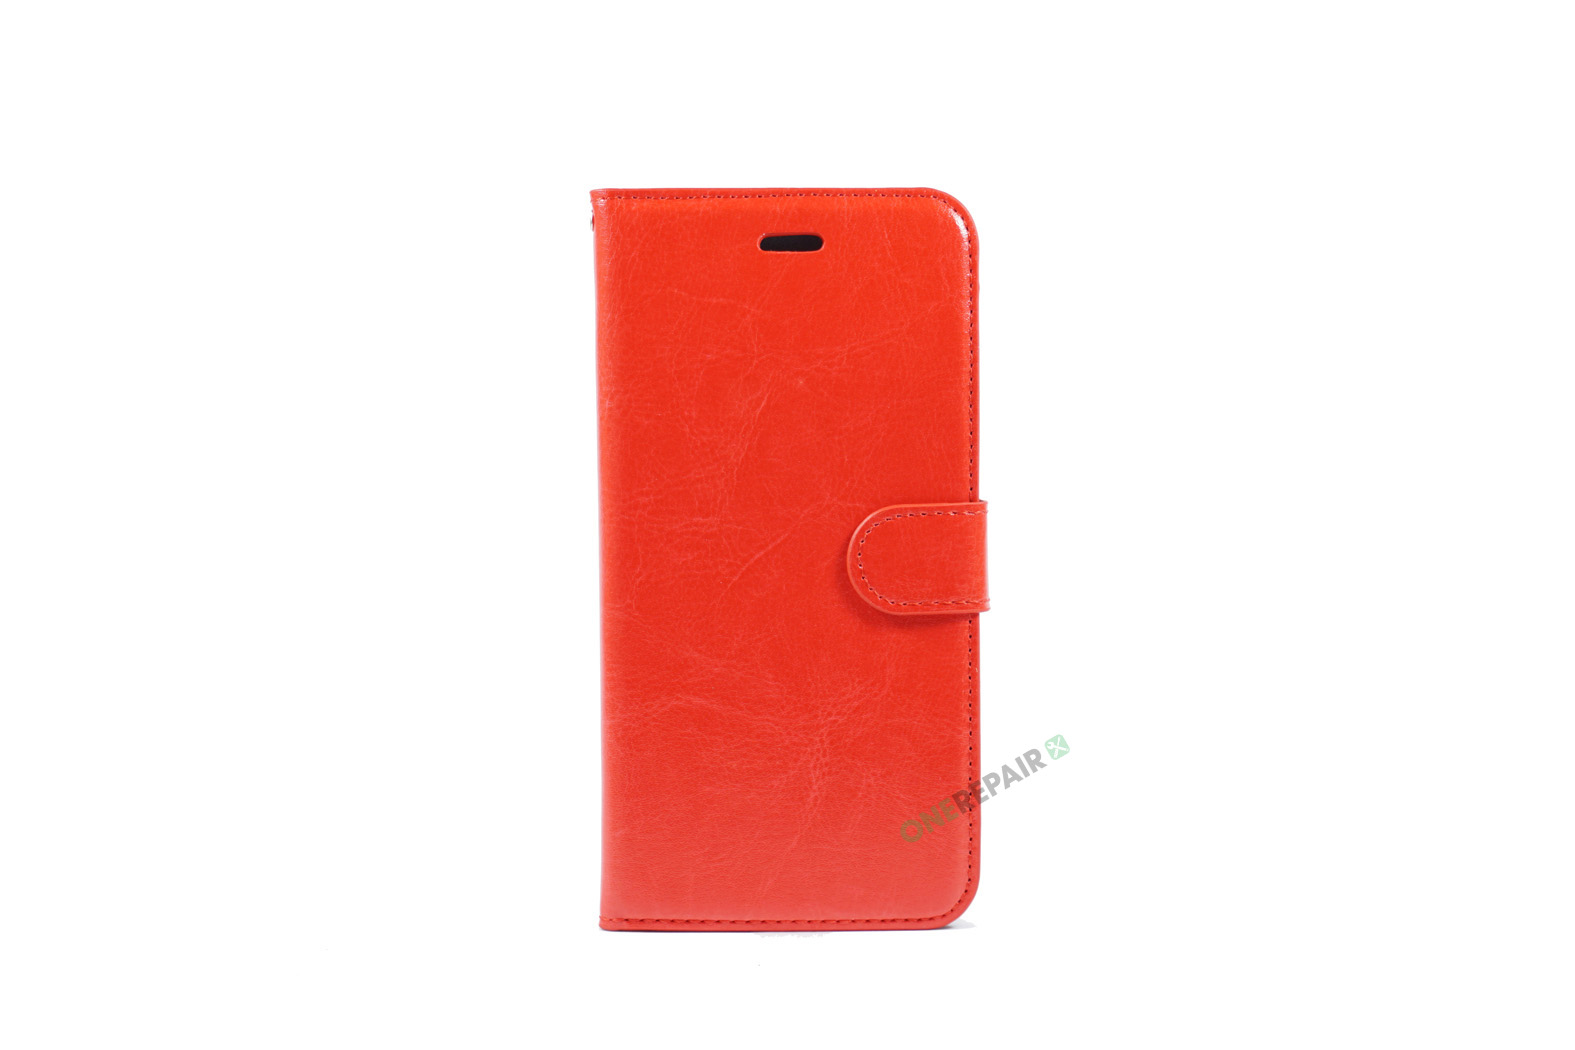 iPhone 6, 6S, A1549, A1586, A1589, A1633, A1688, A1700, A1691, Apple, Flipcover, Pung, Fold, Cover, Plads til kort, Rød, Roed